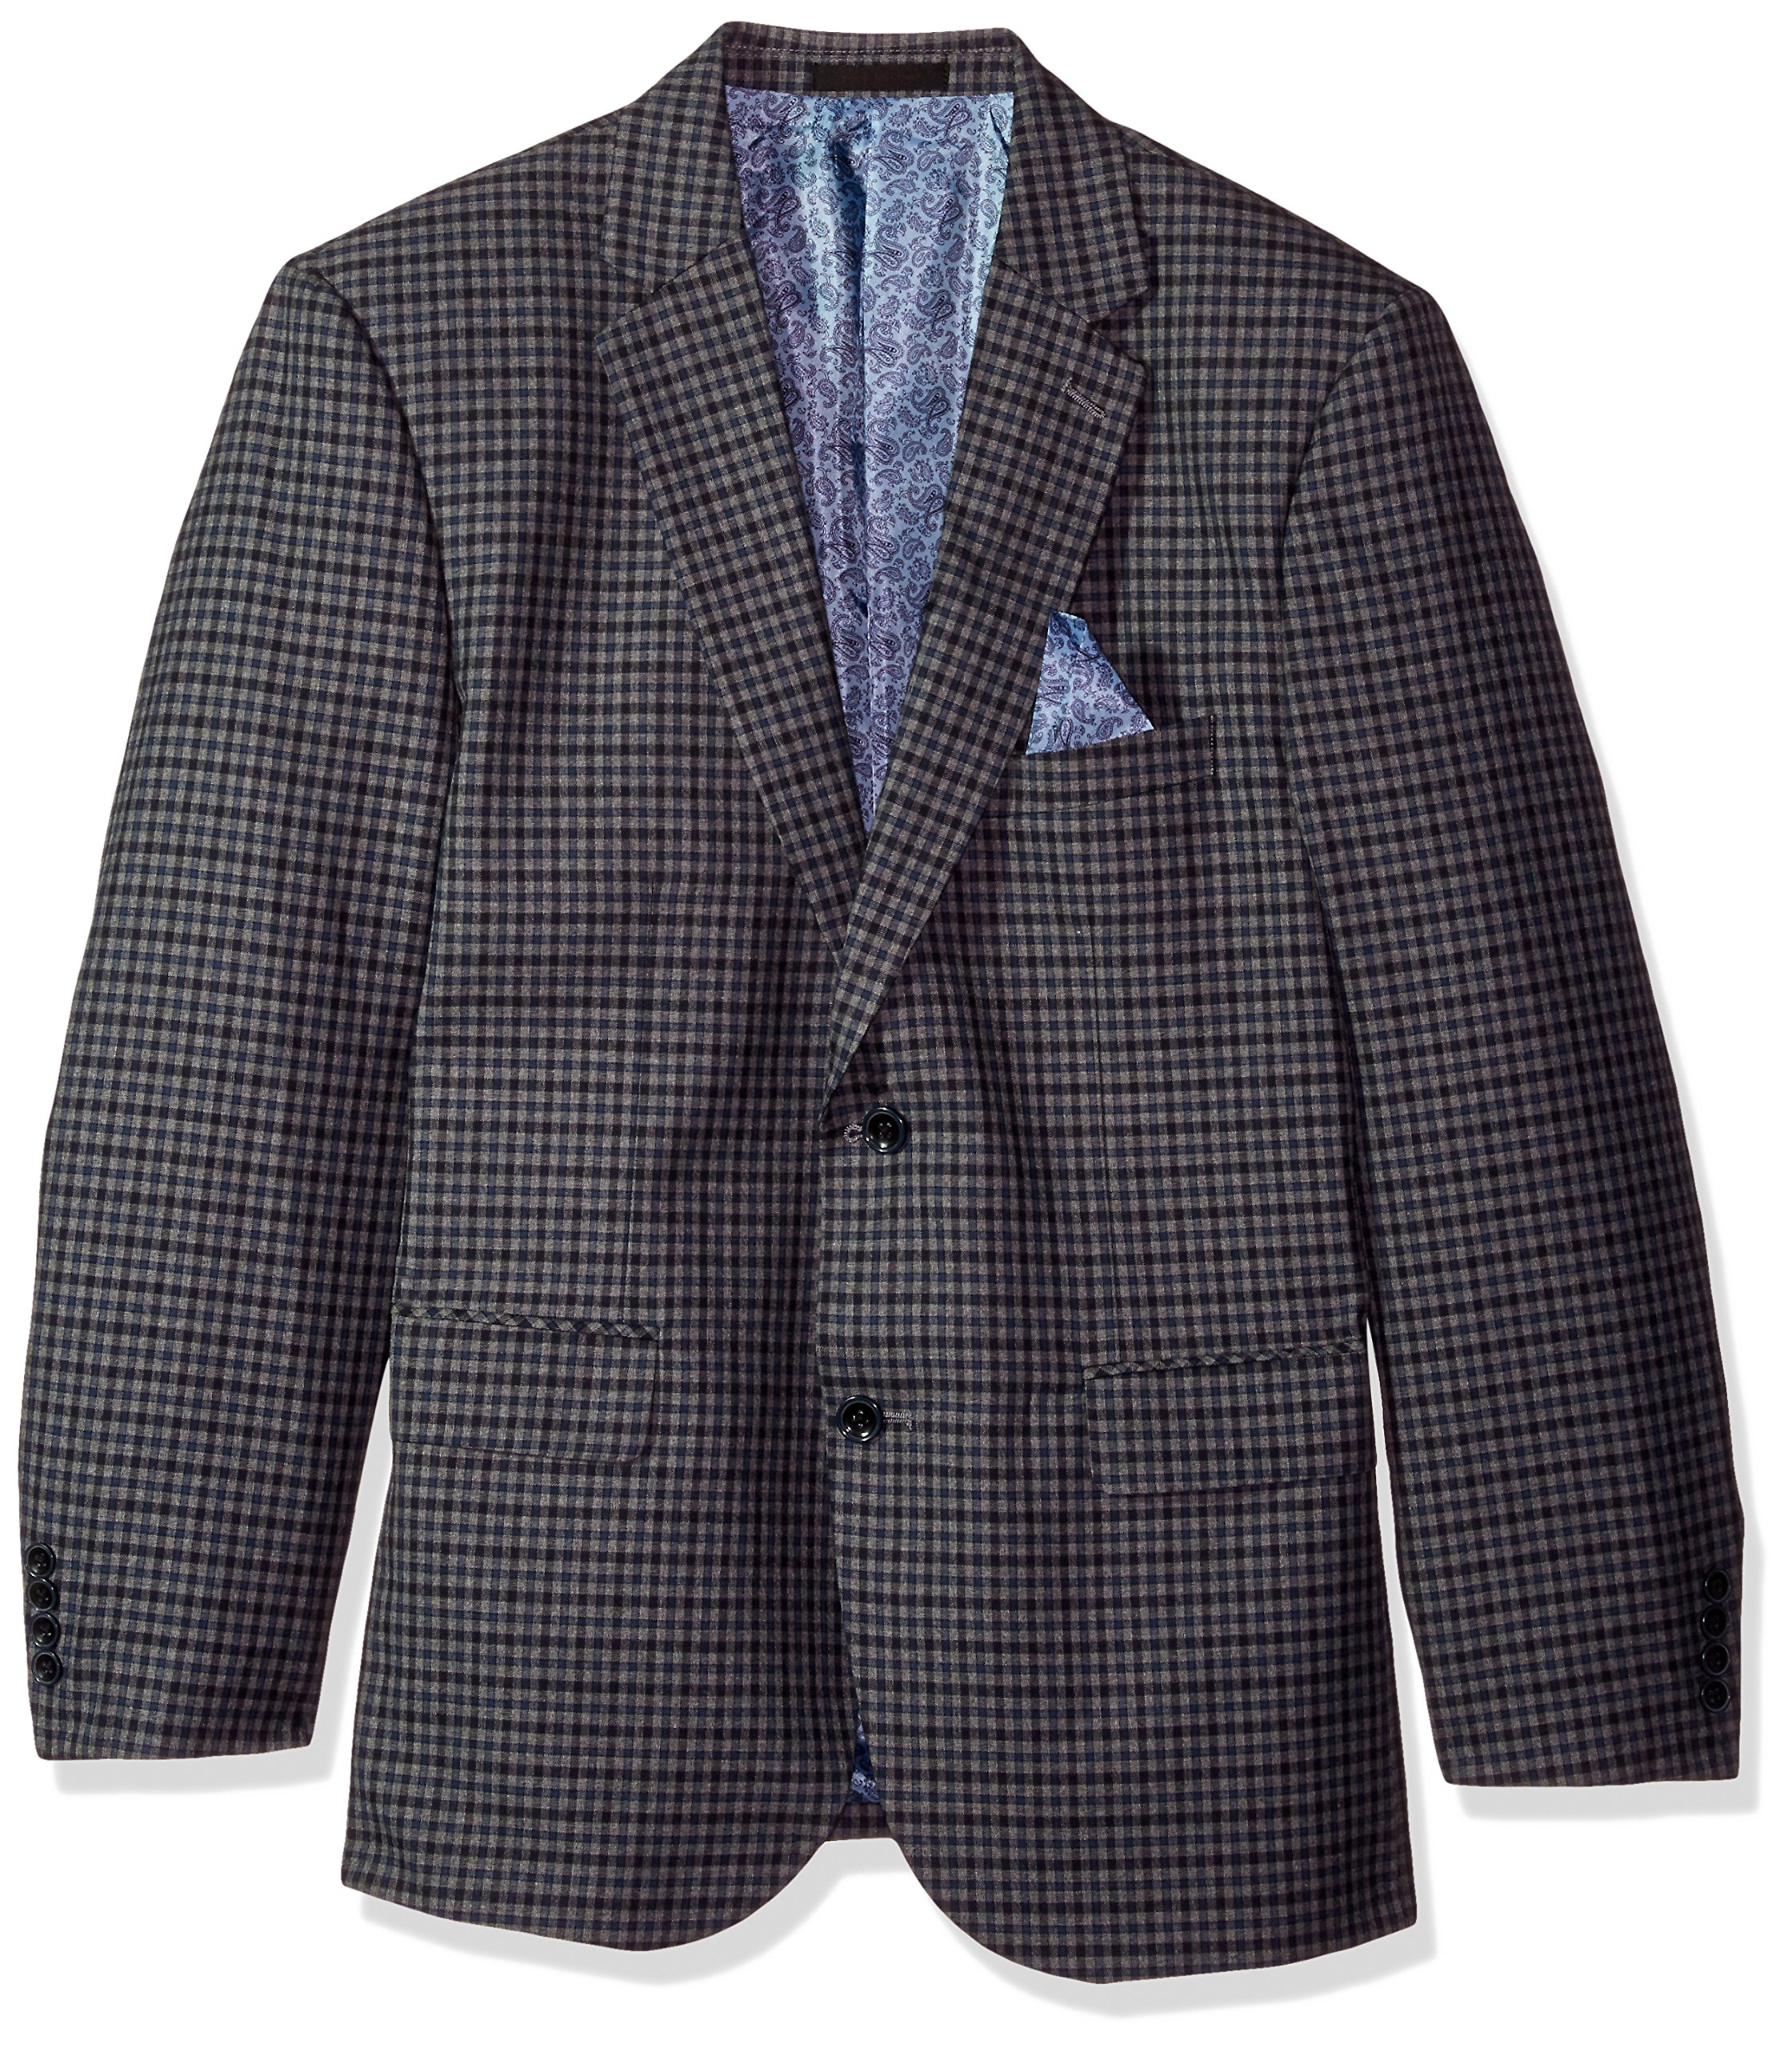 Alexander Julian Colours Men's Big and Tall Single Breasted Modern Fit Check Suit Jacket, Grey/Blue, 56 Long